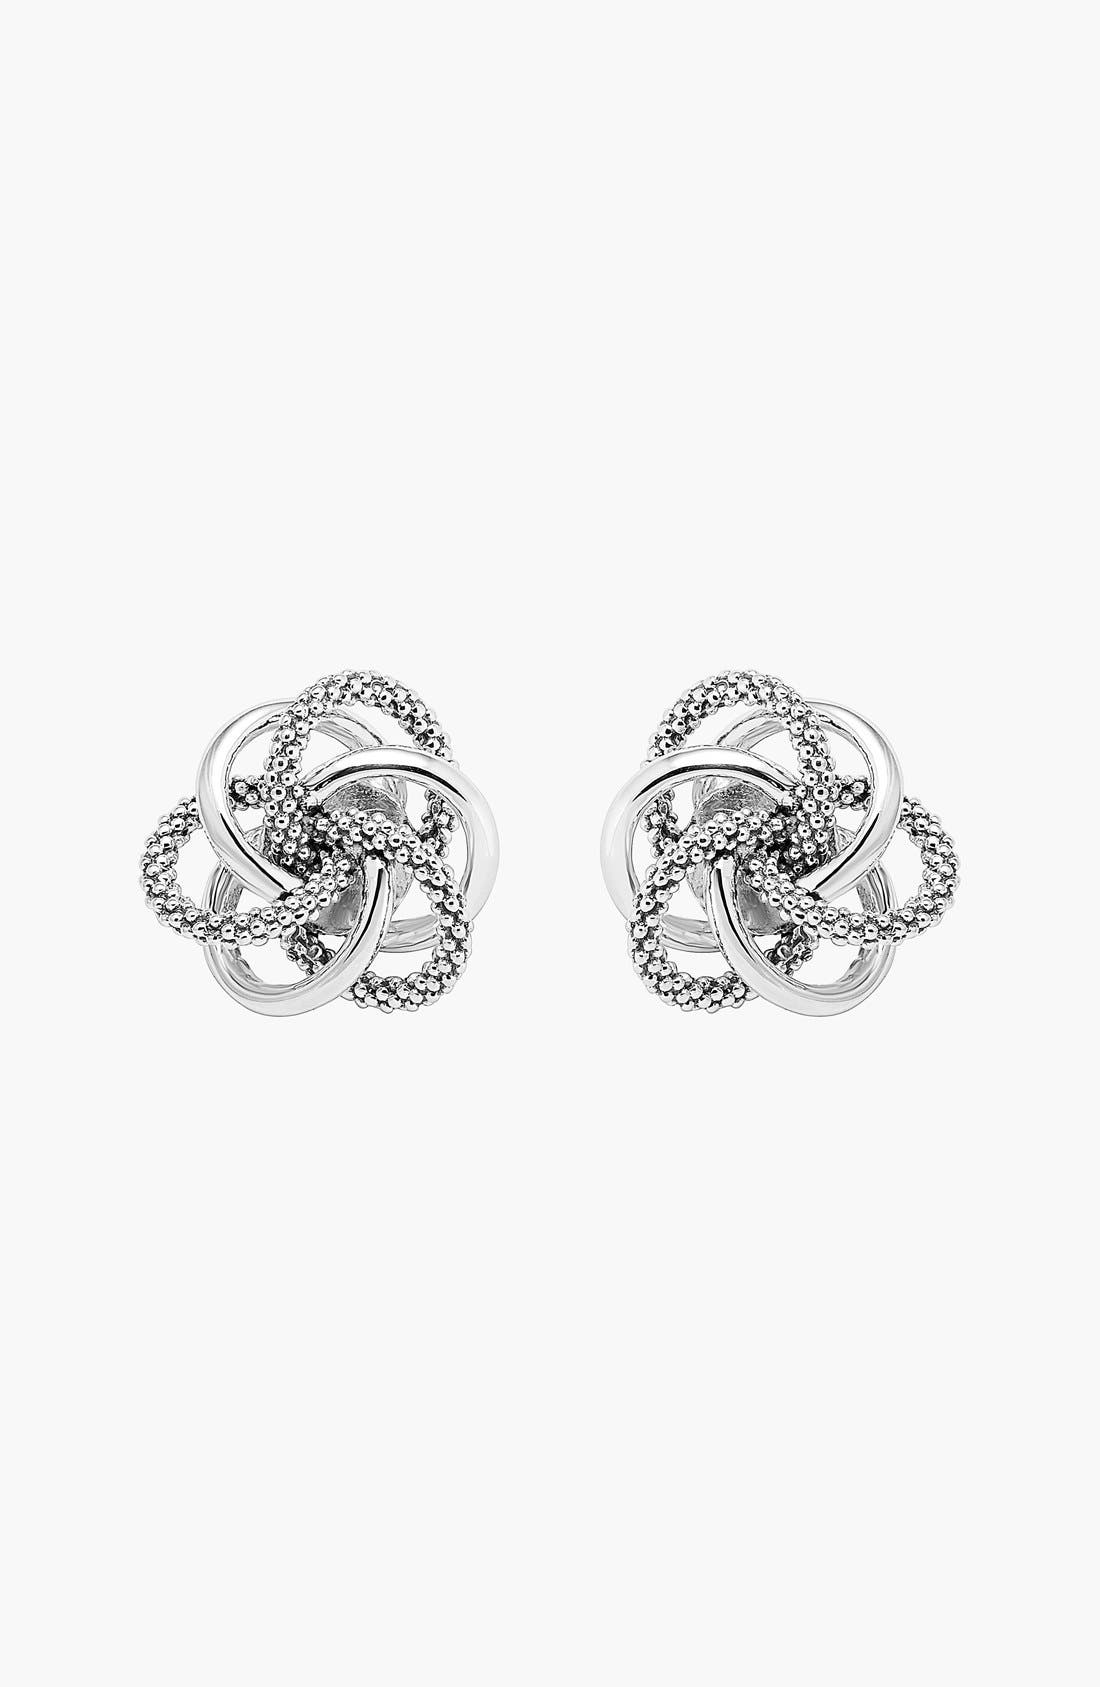 Caviar<sup>™</sup> Stud Earrings,                             Alternate thumbnail 5, color,                             STERLING SILVER